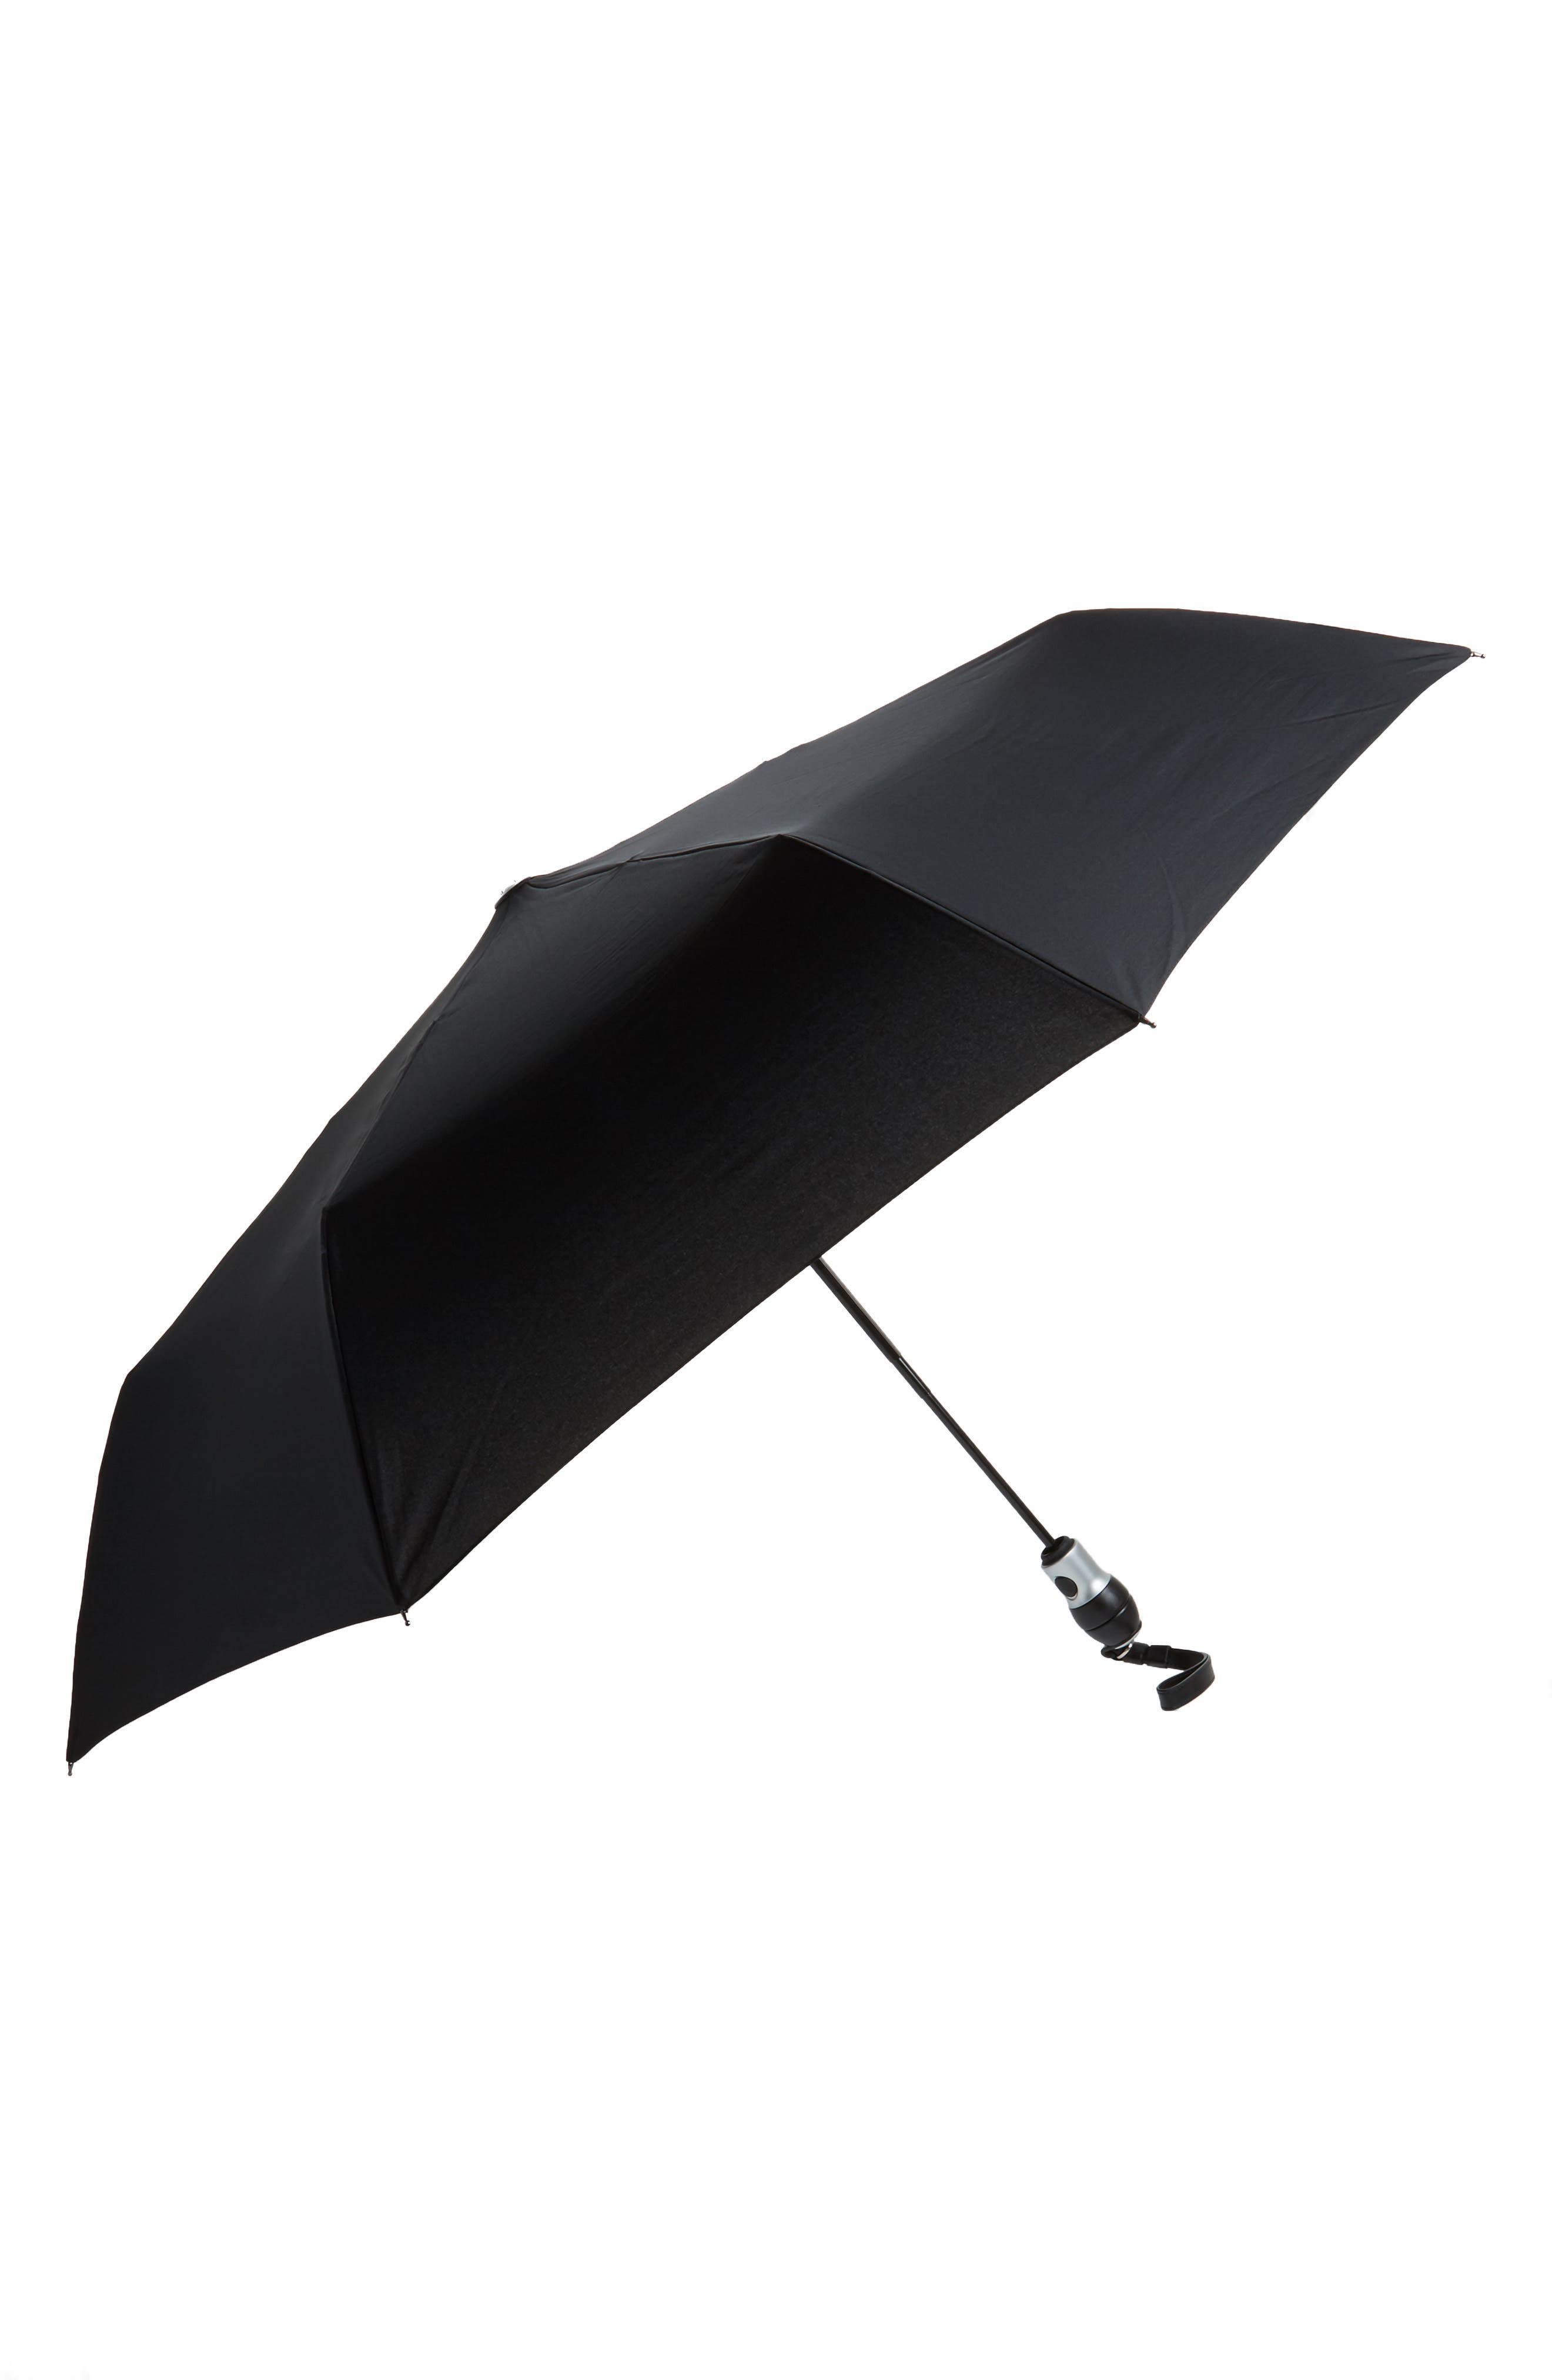 DAVEK Large Umbrella